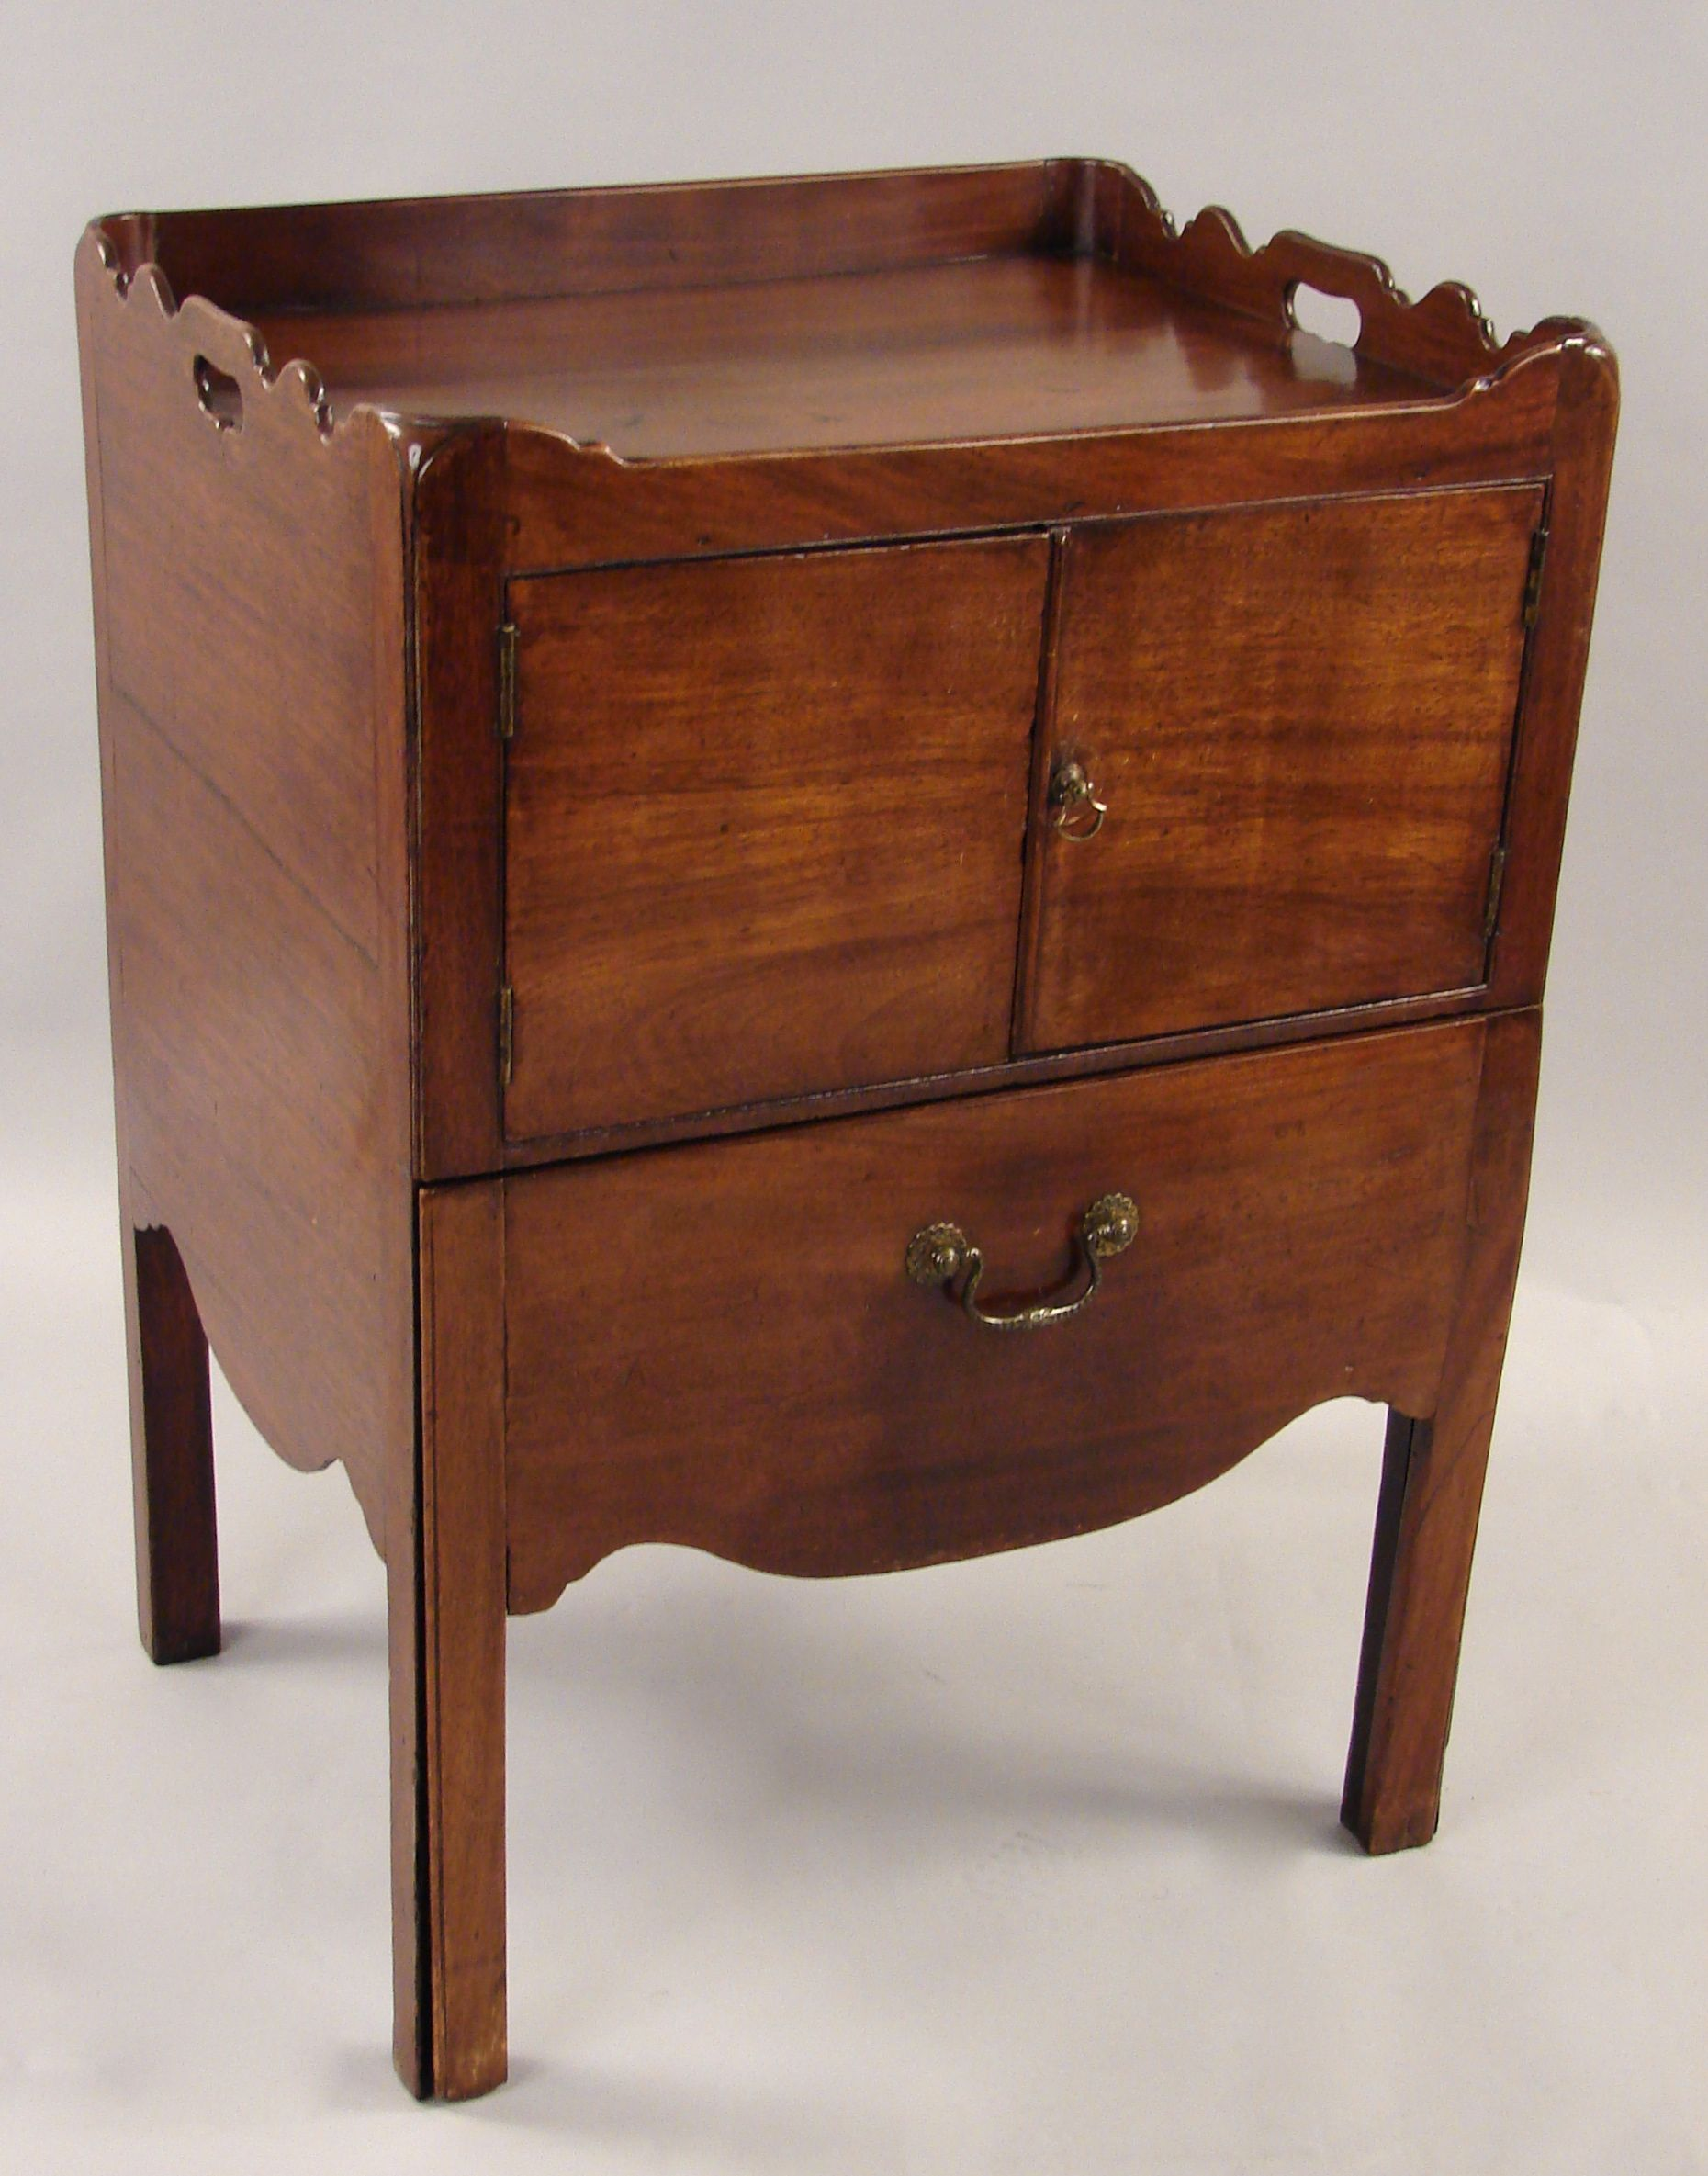 C915 9 A George Iii Mahogany Bedside Commode With A Three